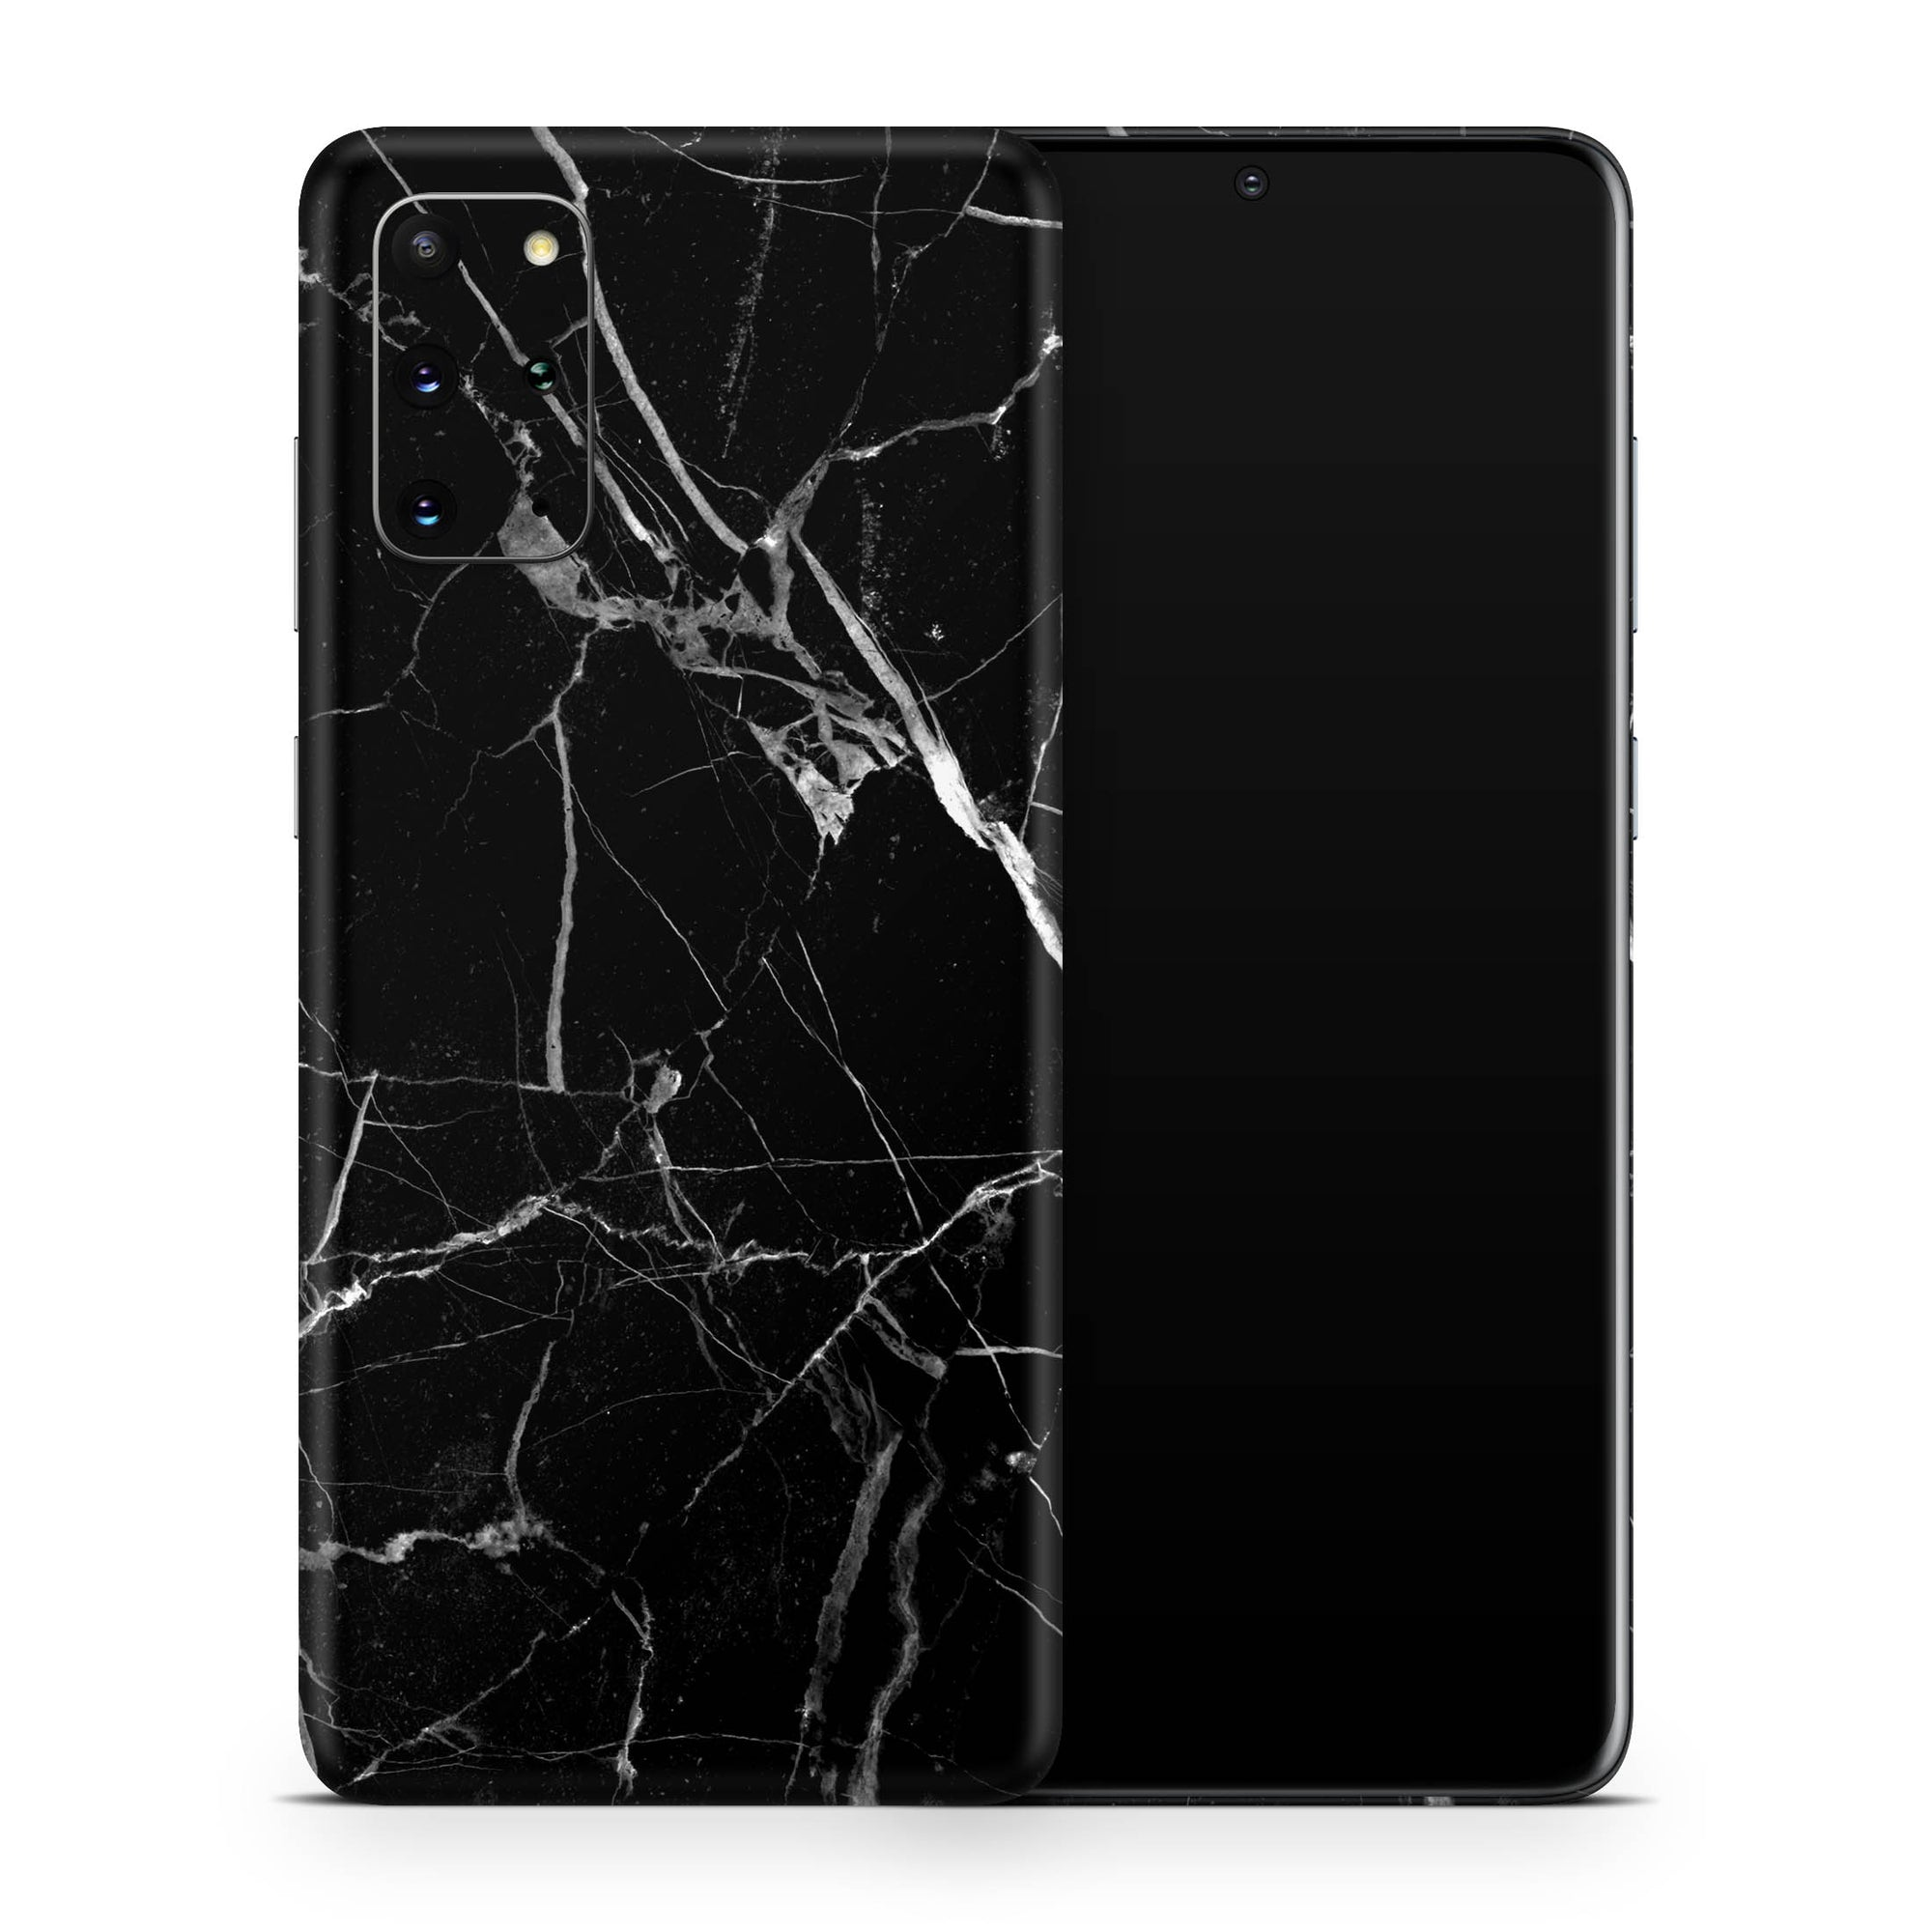 Black Hyper Marble Galaxy S20 Ultra Skin + Case-Uniqfind